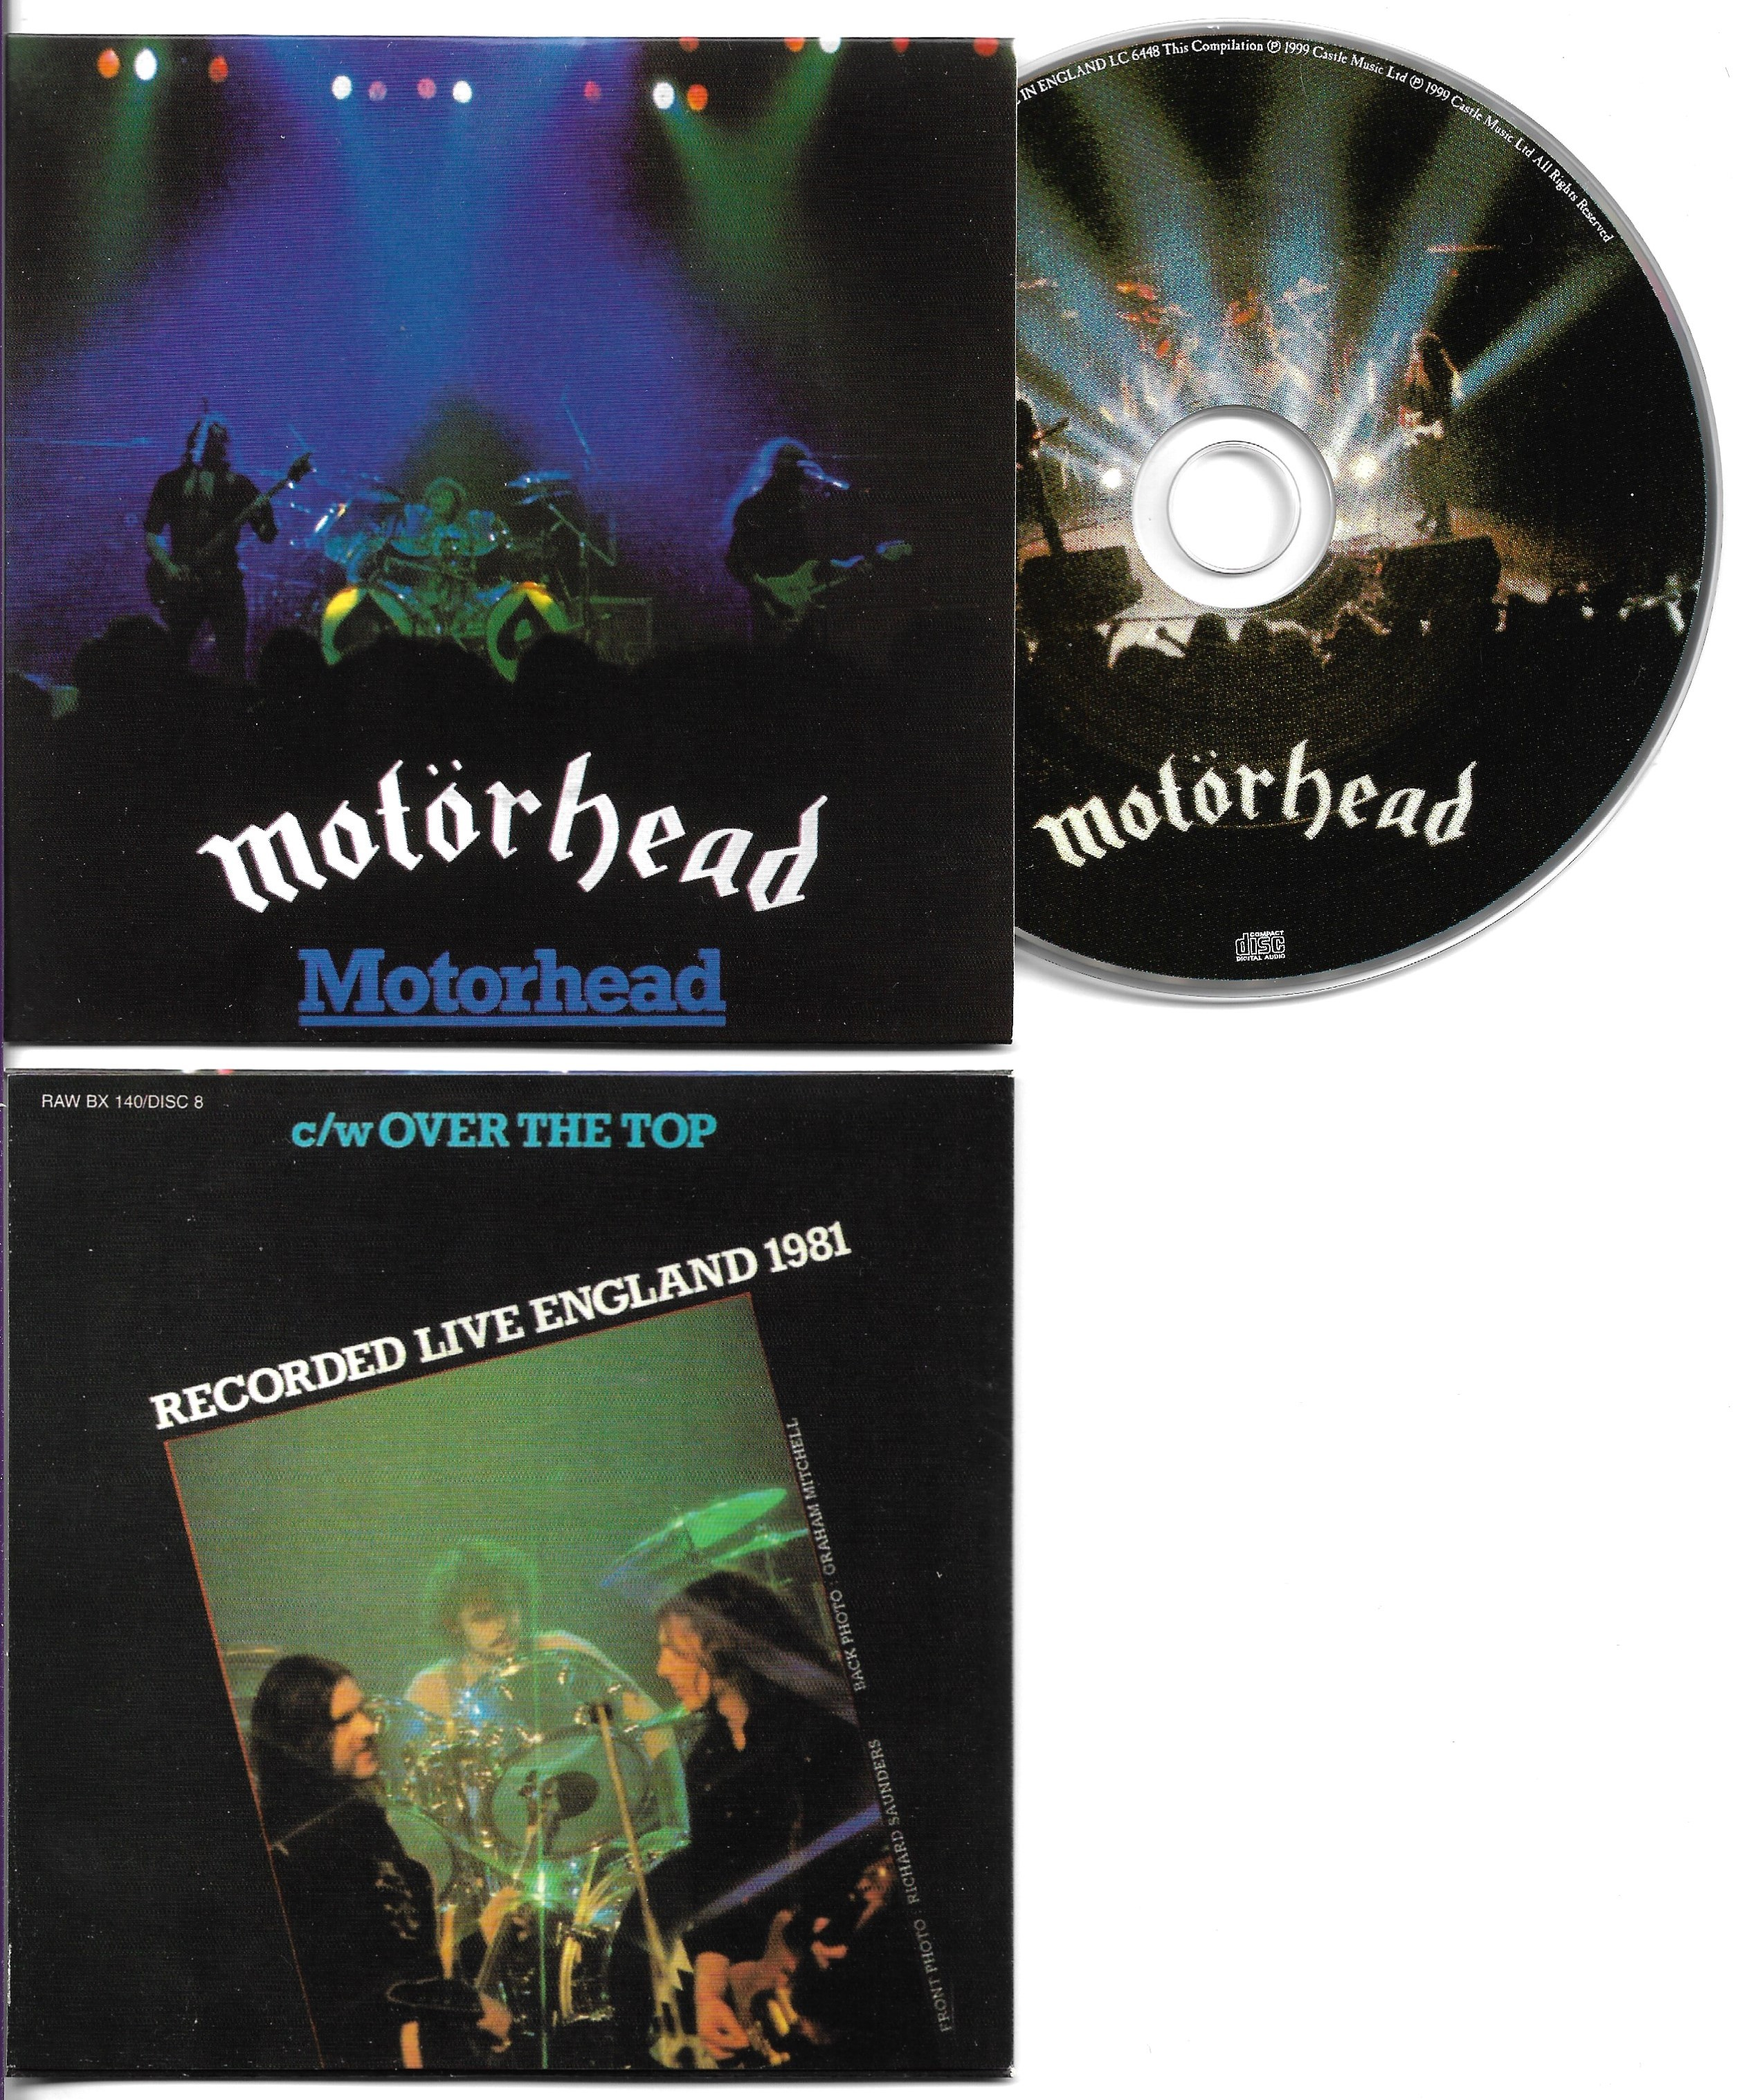 MOTÖRHEAD - Motörhead - 2-Track CARD SLEEVE - CD single